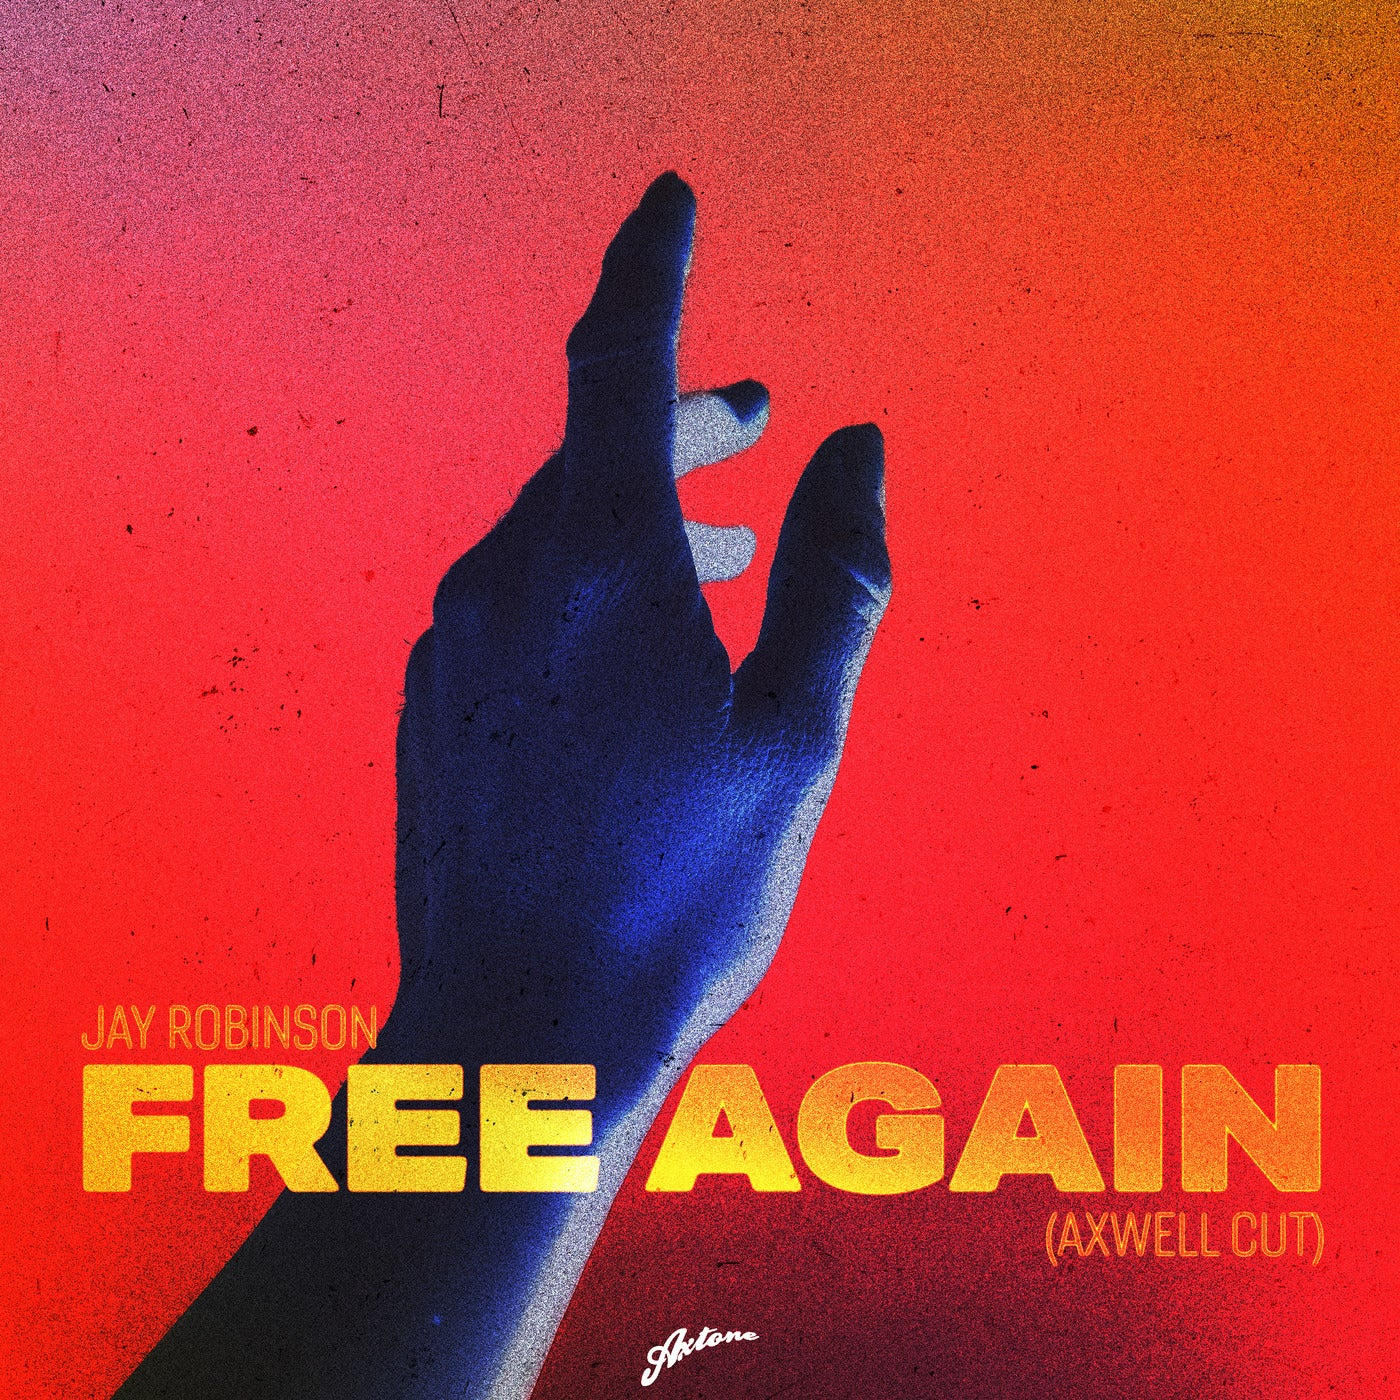 Free Again (Axwell Extended Cut)